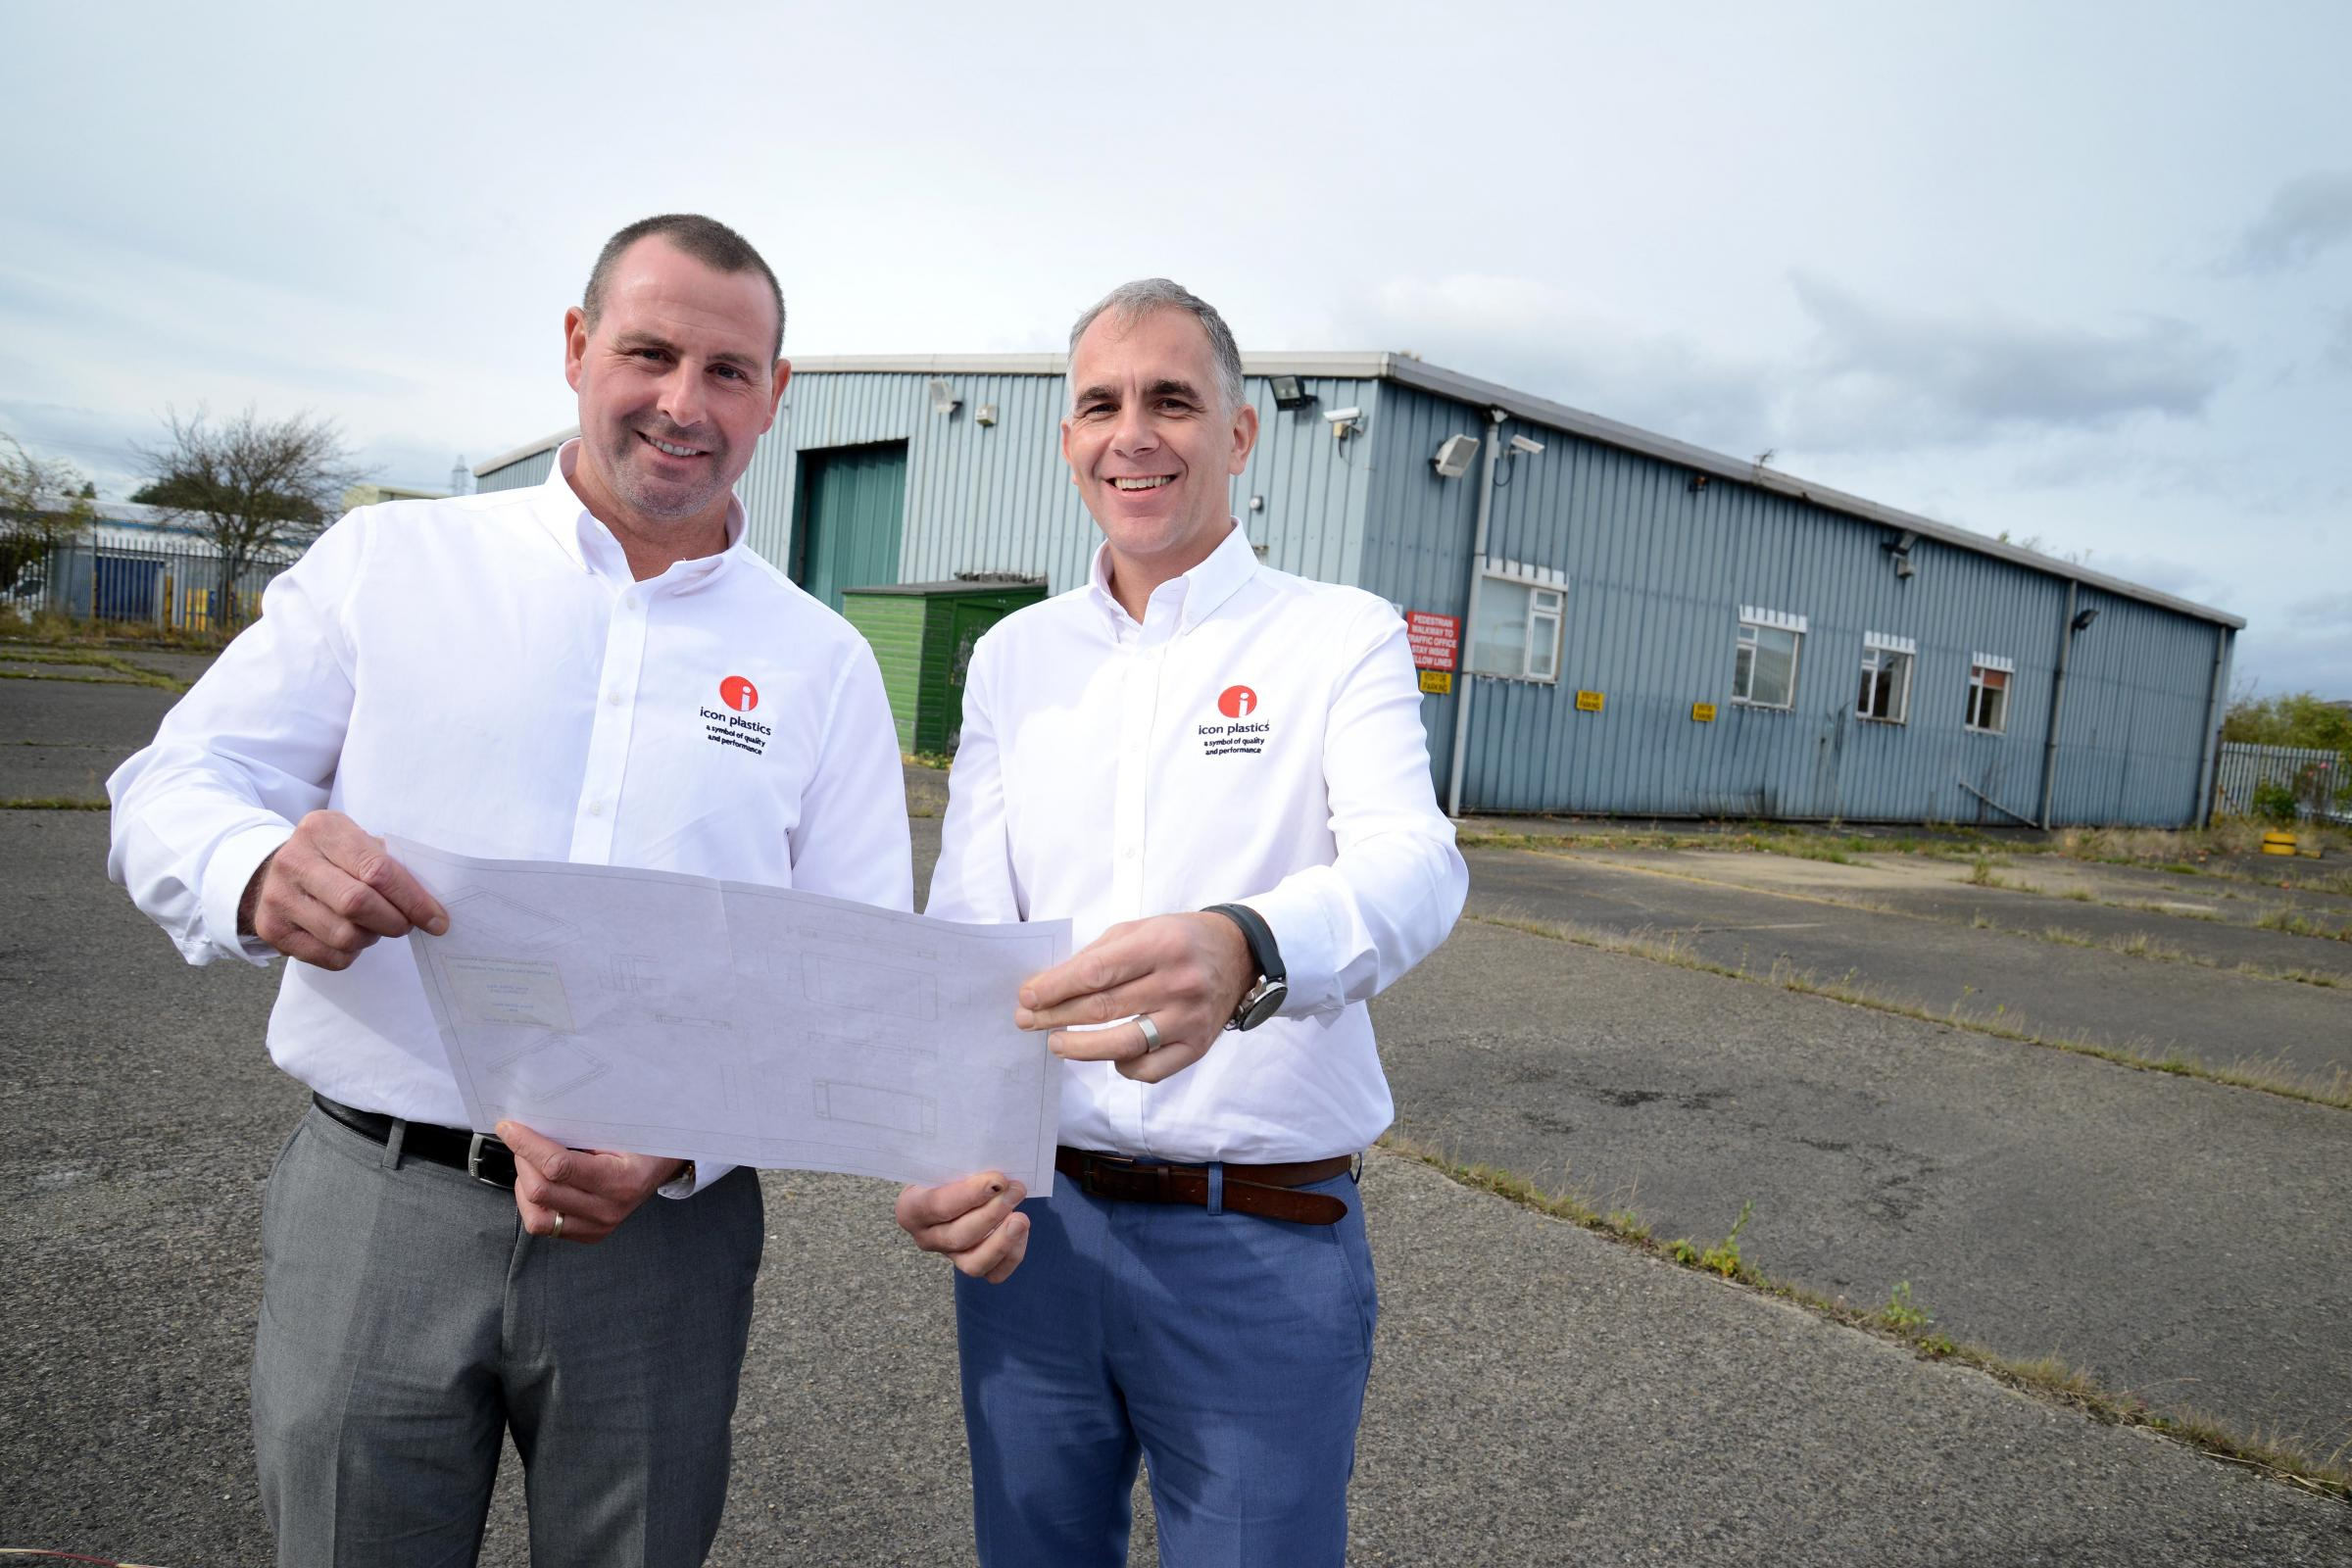 PLANS: Gareth Thomas, managing director, left, and operations director Phil Walker outside the company's new site